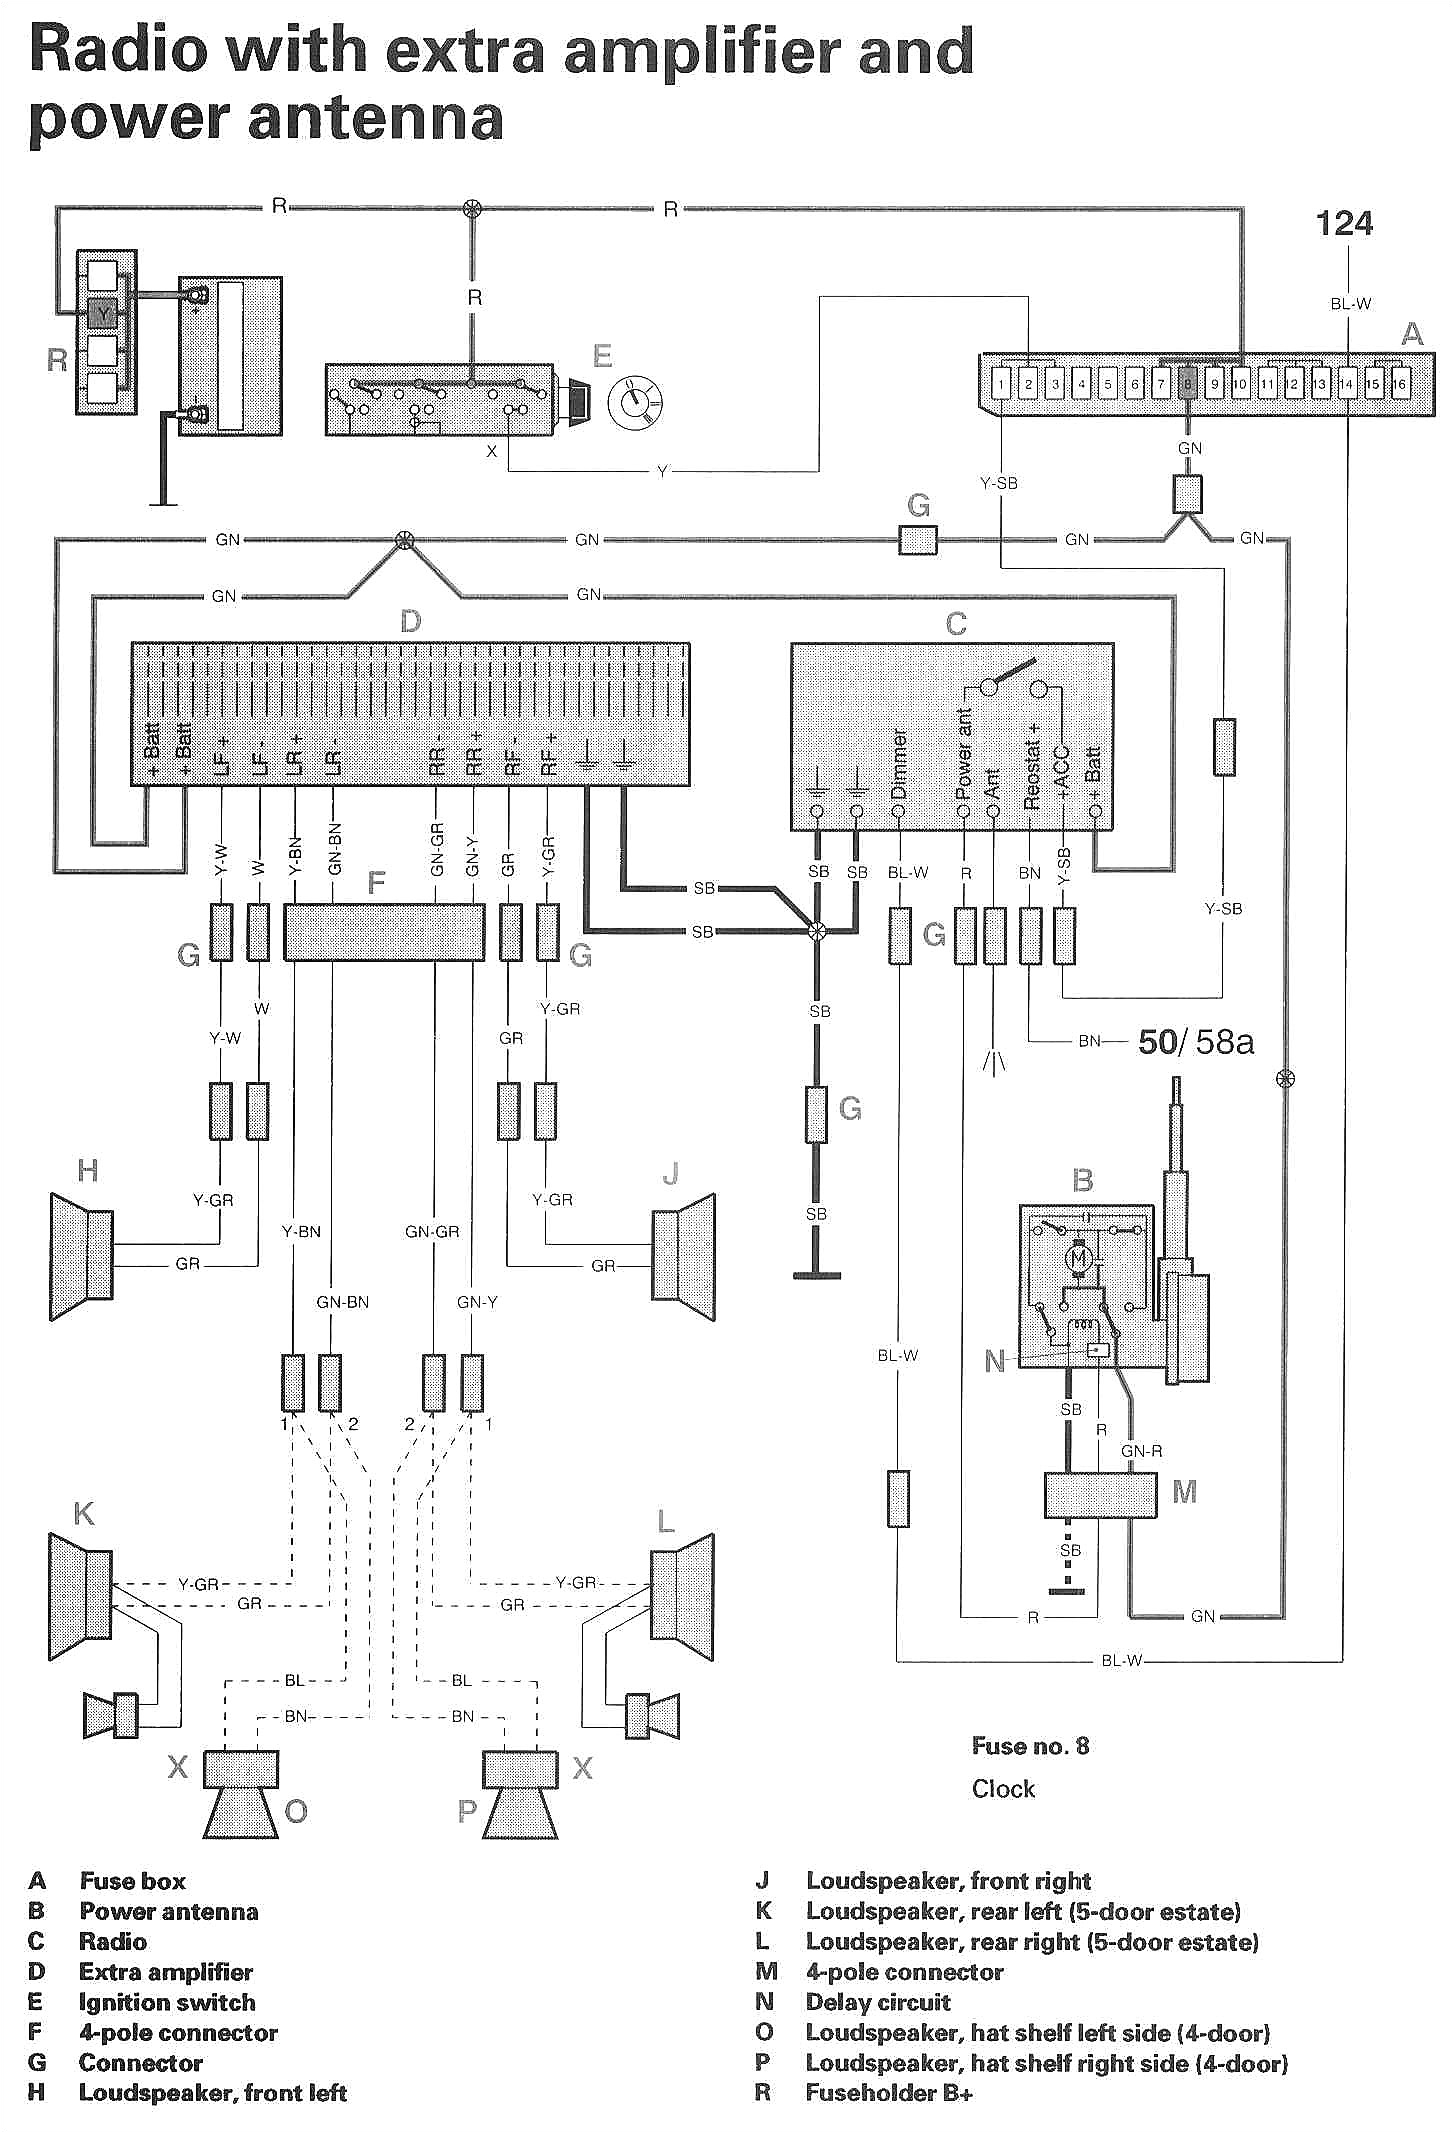 volvo 850 93 1993 car radio wire harness for wiring new stereo volvo 850 radio wiring harness diagram